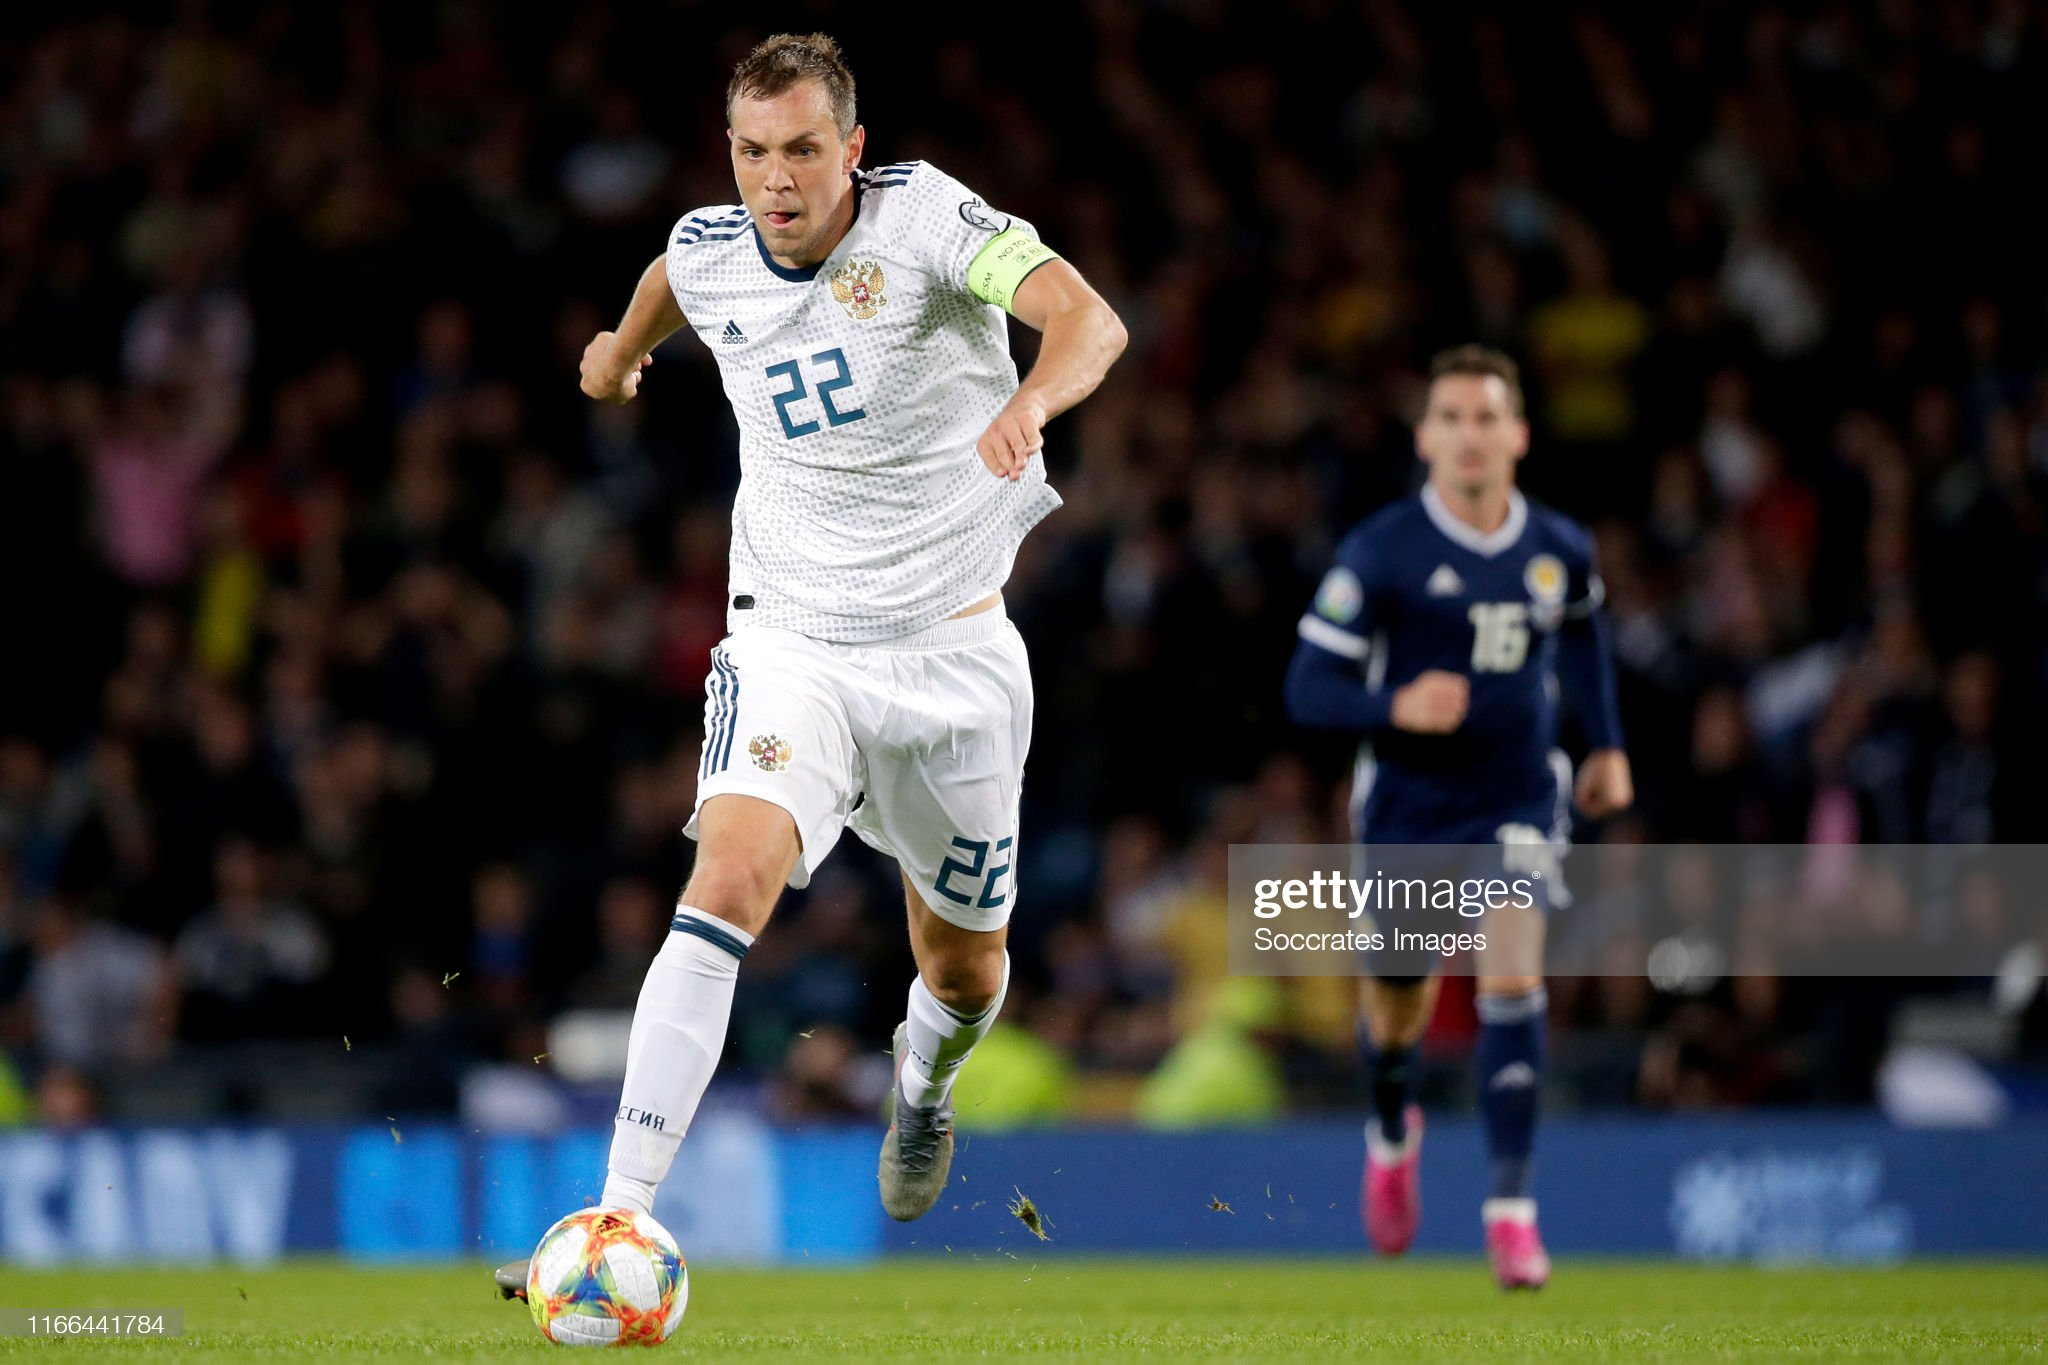 Russia v Scotland preview, prediction and odds